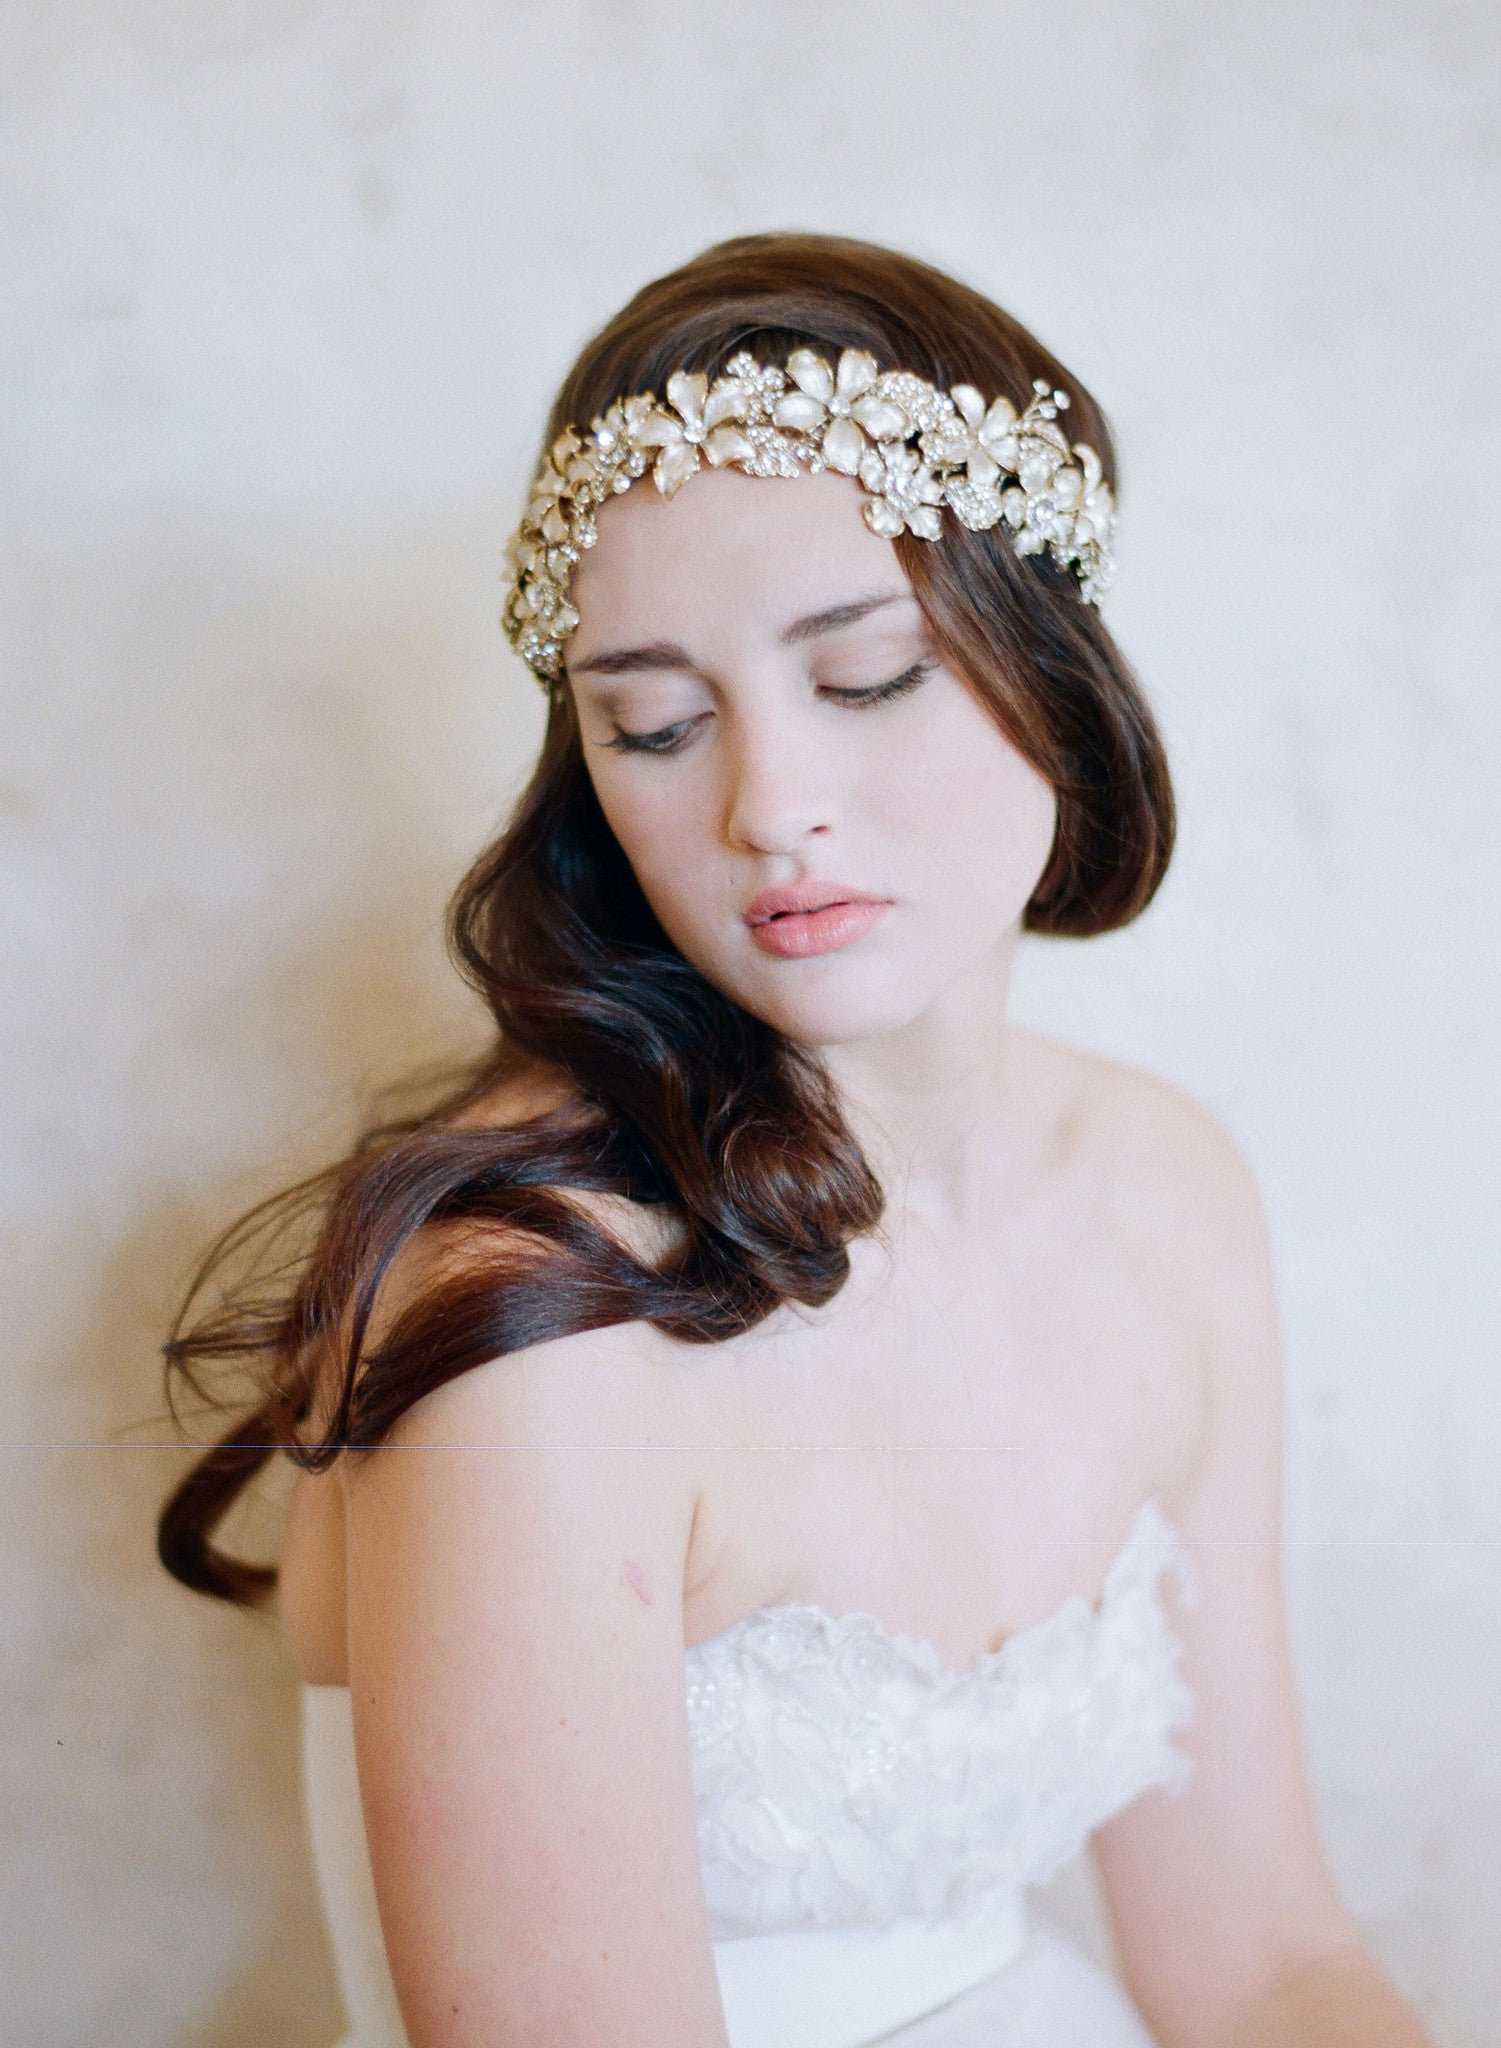 Flowering oversized garden headband - Style #520